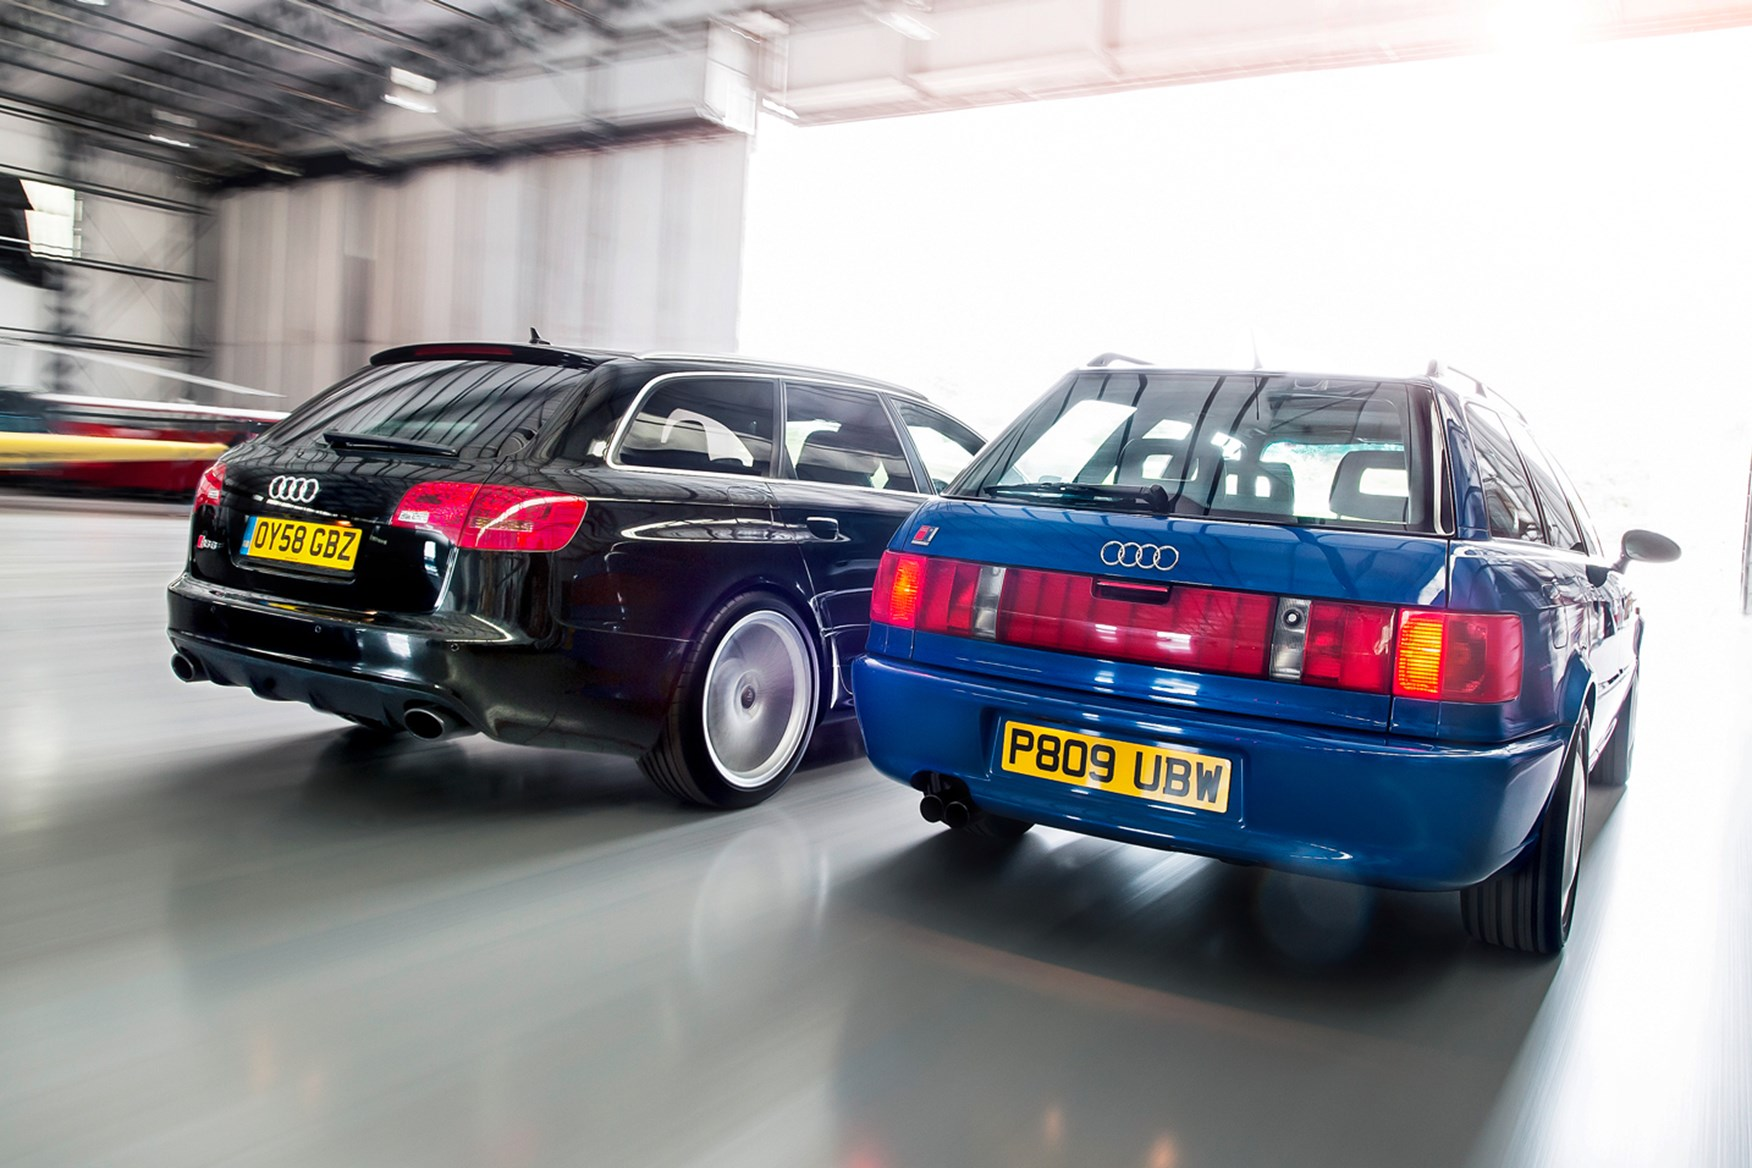 ... Estate Cars To Make Your Head Spin: The 994 RS2, And The 2008 RS6, Both  Family Wagons Turned Brutal Supercars ...